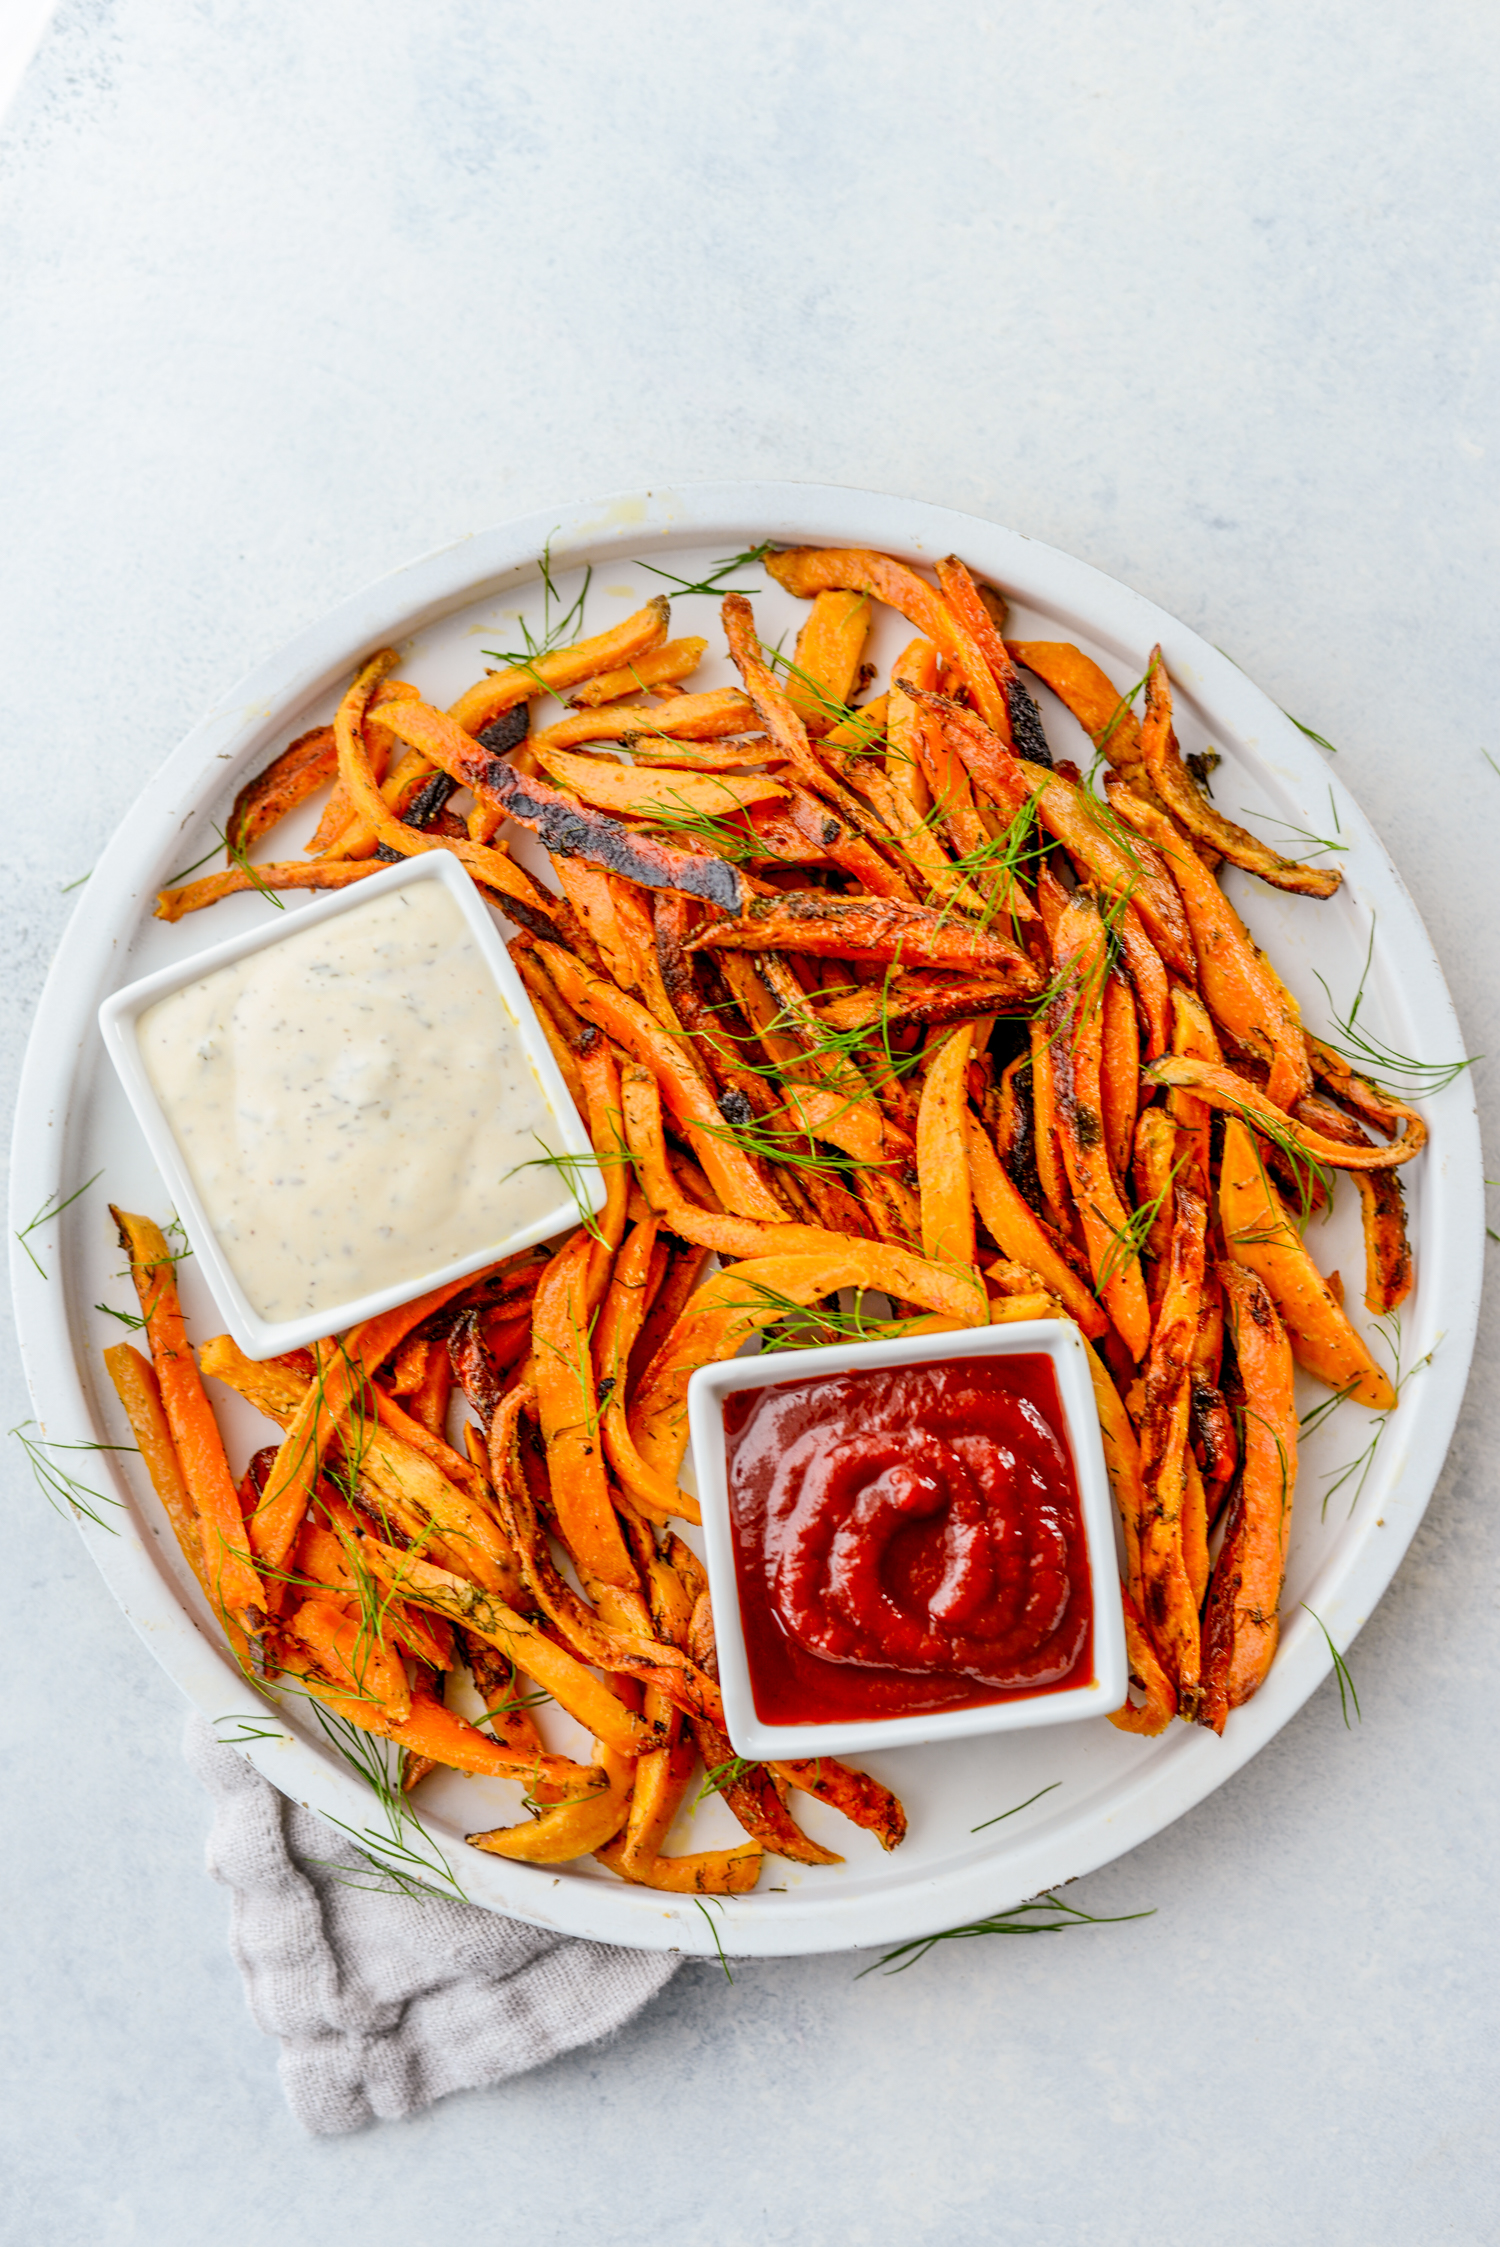 Crispy Homemade Dairy-Free Ranch Fries   simplerootswellness.com #frenchfries #easyrecipes #mealprep #ranch #healthy